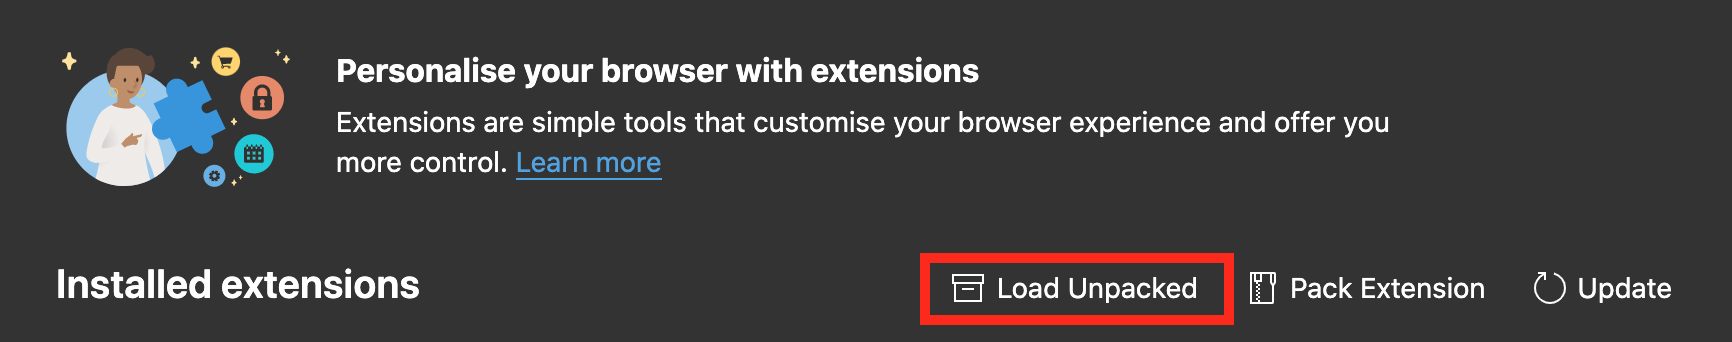 Loading an unpacked extension in Microsoft Edge